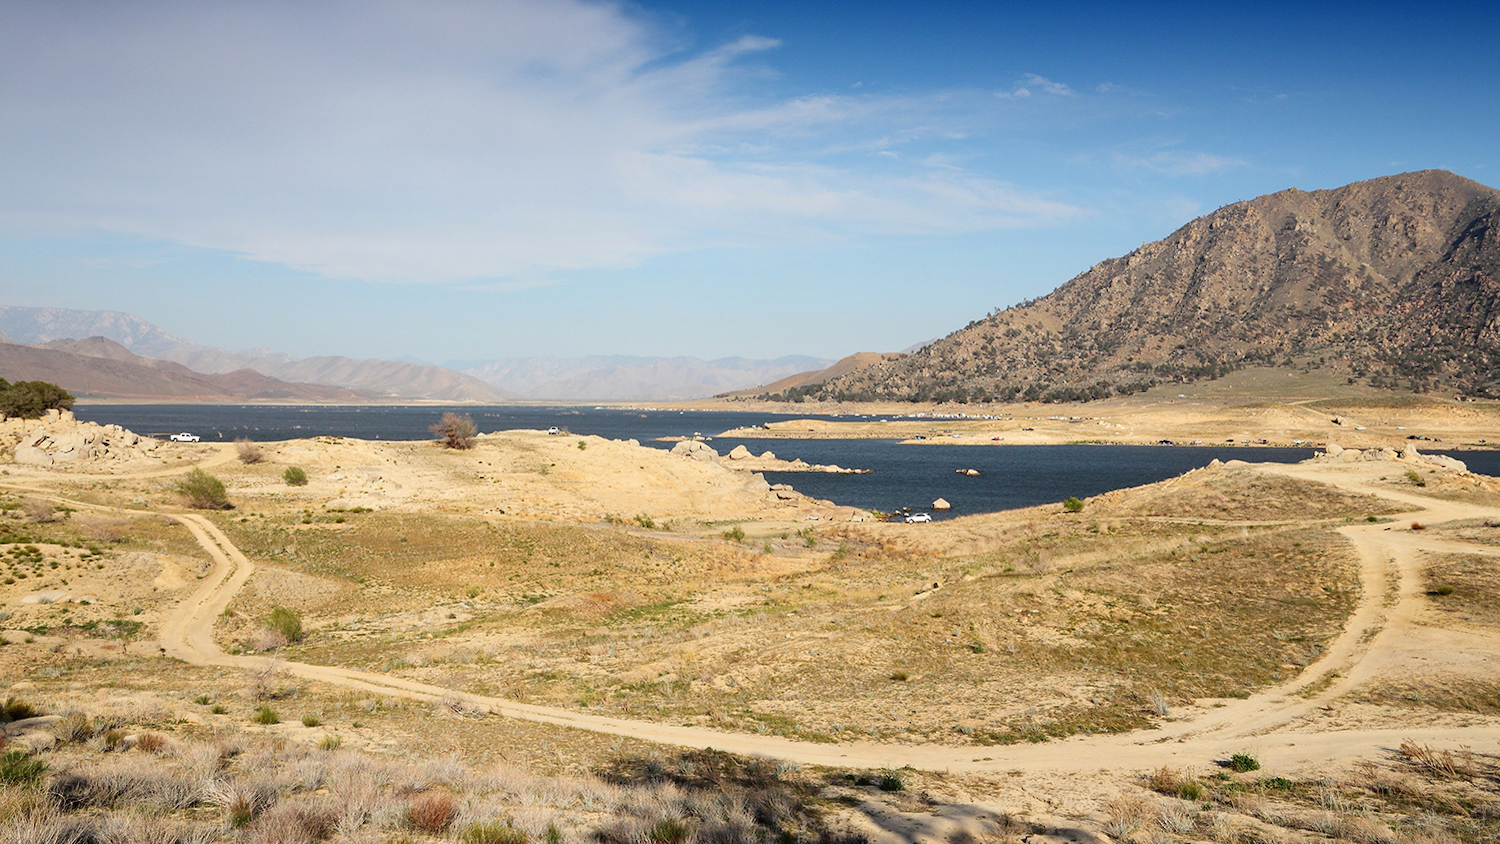 Lake Isabella in Kern County, California - Ask an Expert: How is the Western U.S. Drought Impacting the Power Grid? - Forestry and Environmental Resources Department at NC State